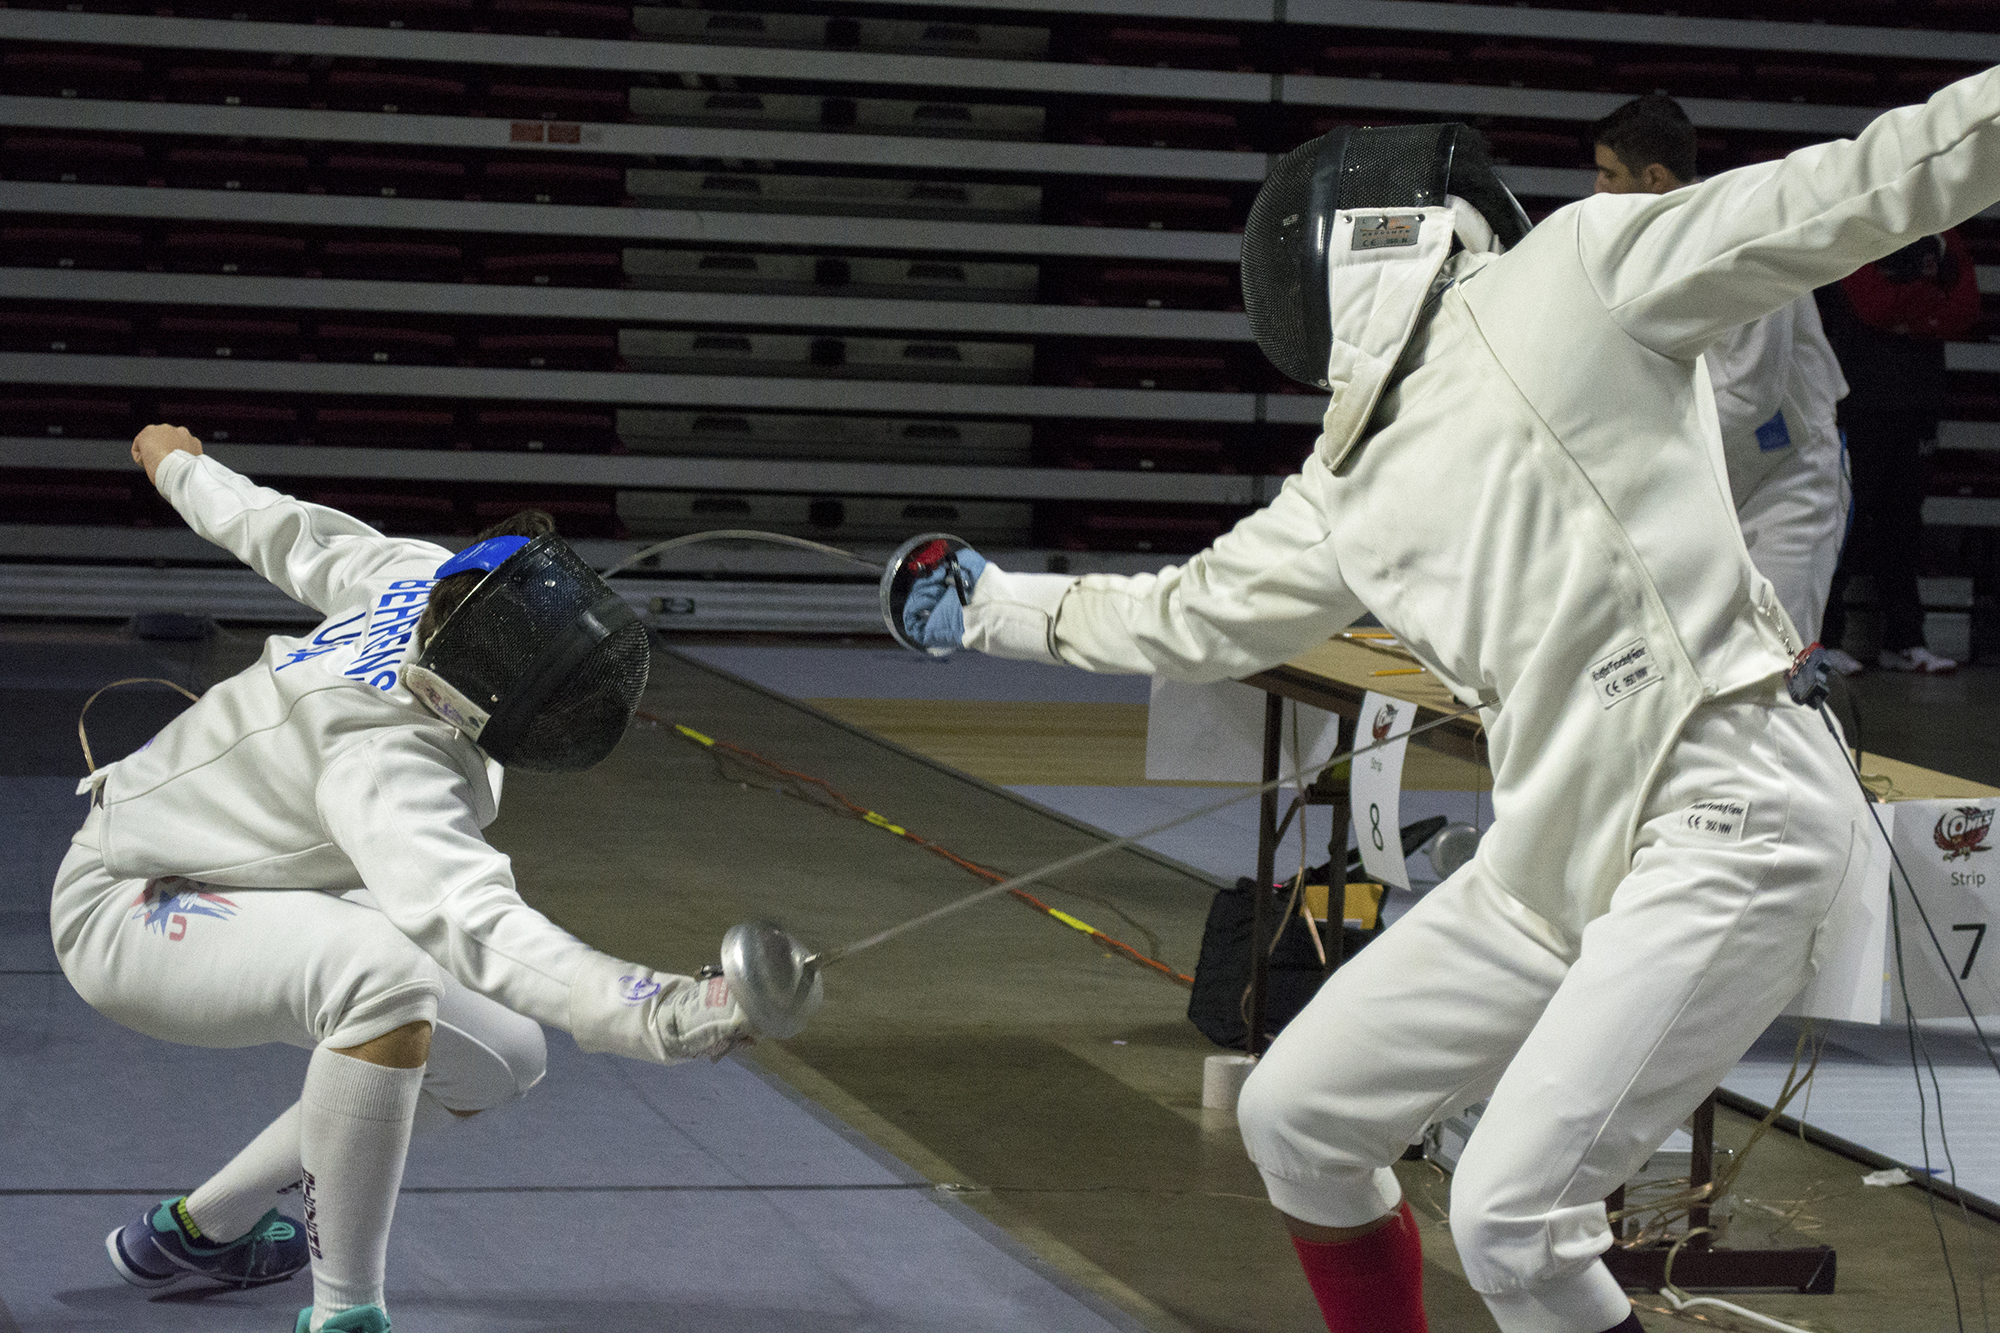 Stony Brook junior épée fencer Avery Holmes (above, right) competes in his direct elimination match with Stevens épée fencer Leonard Behrens. Holmes would place 58th out of 80 for his first competition with Stony Brook. CHRISTOPHER CAMERON/THE STATESMAN